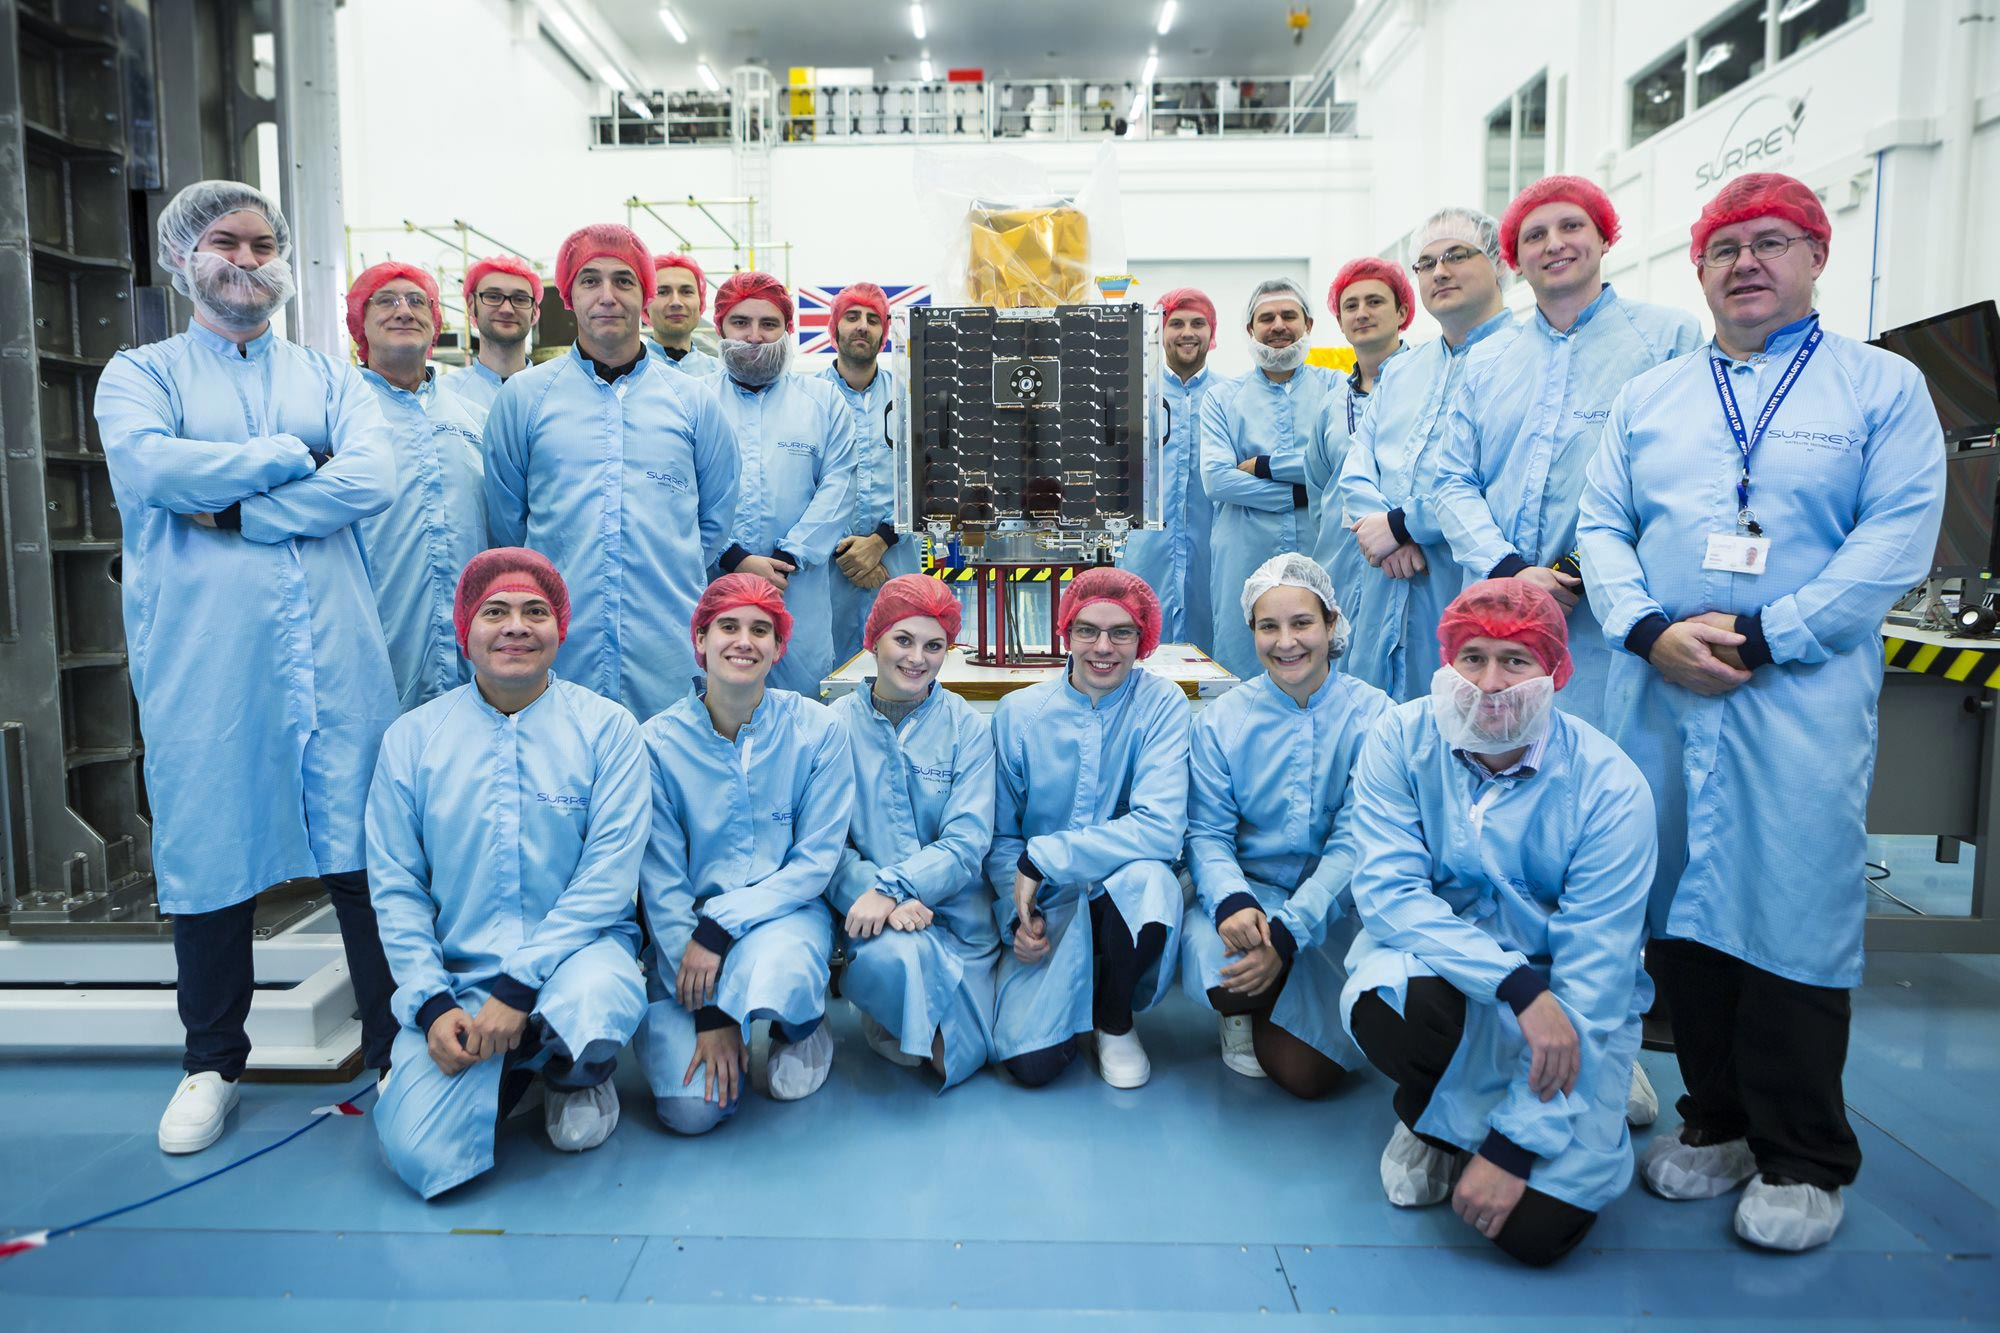 CARBONITE-2 with SSTL engineers: Credit SSTL/Beaucroft Photography